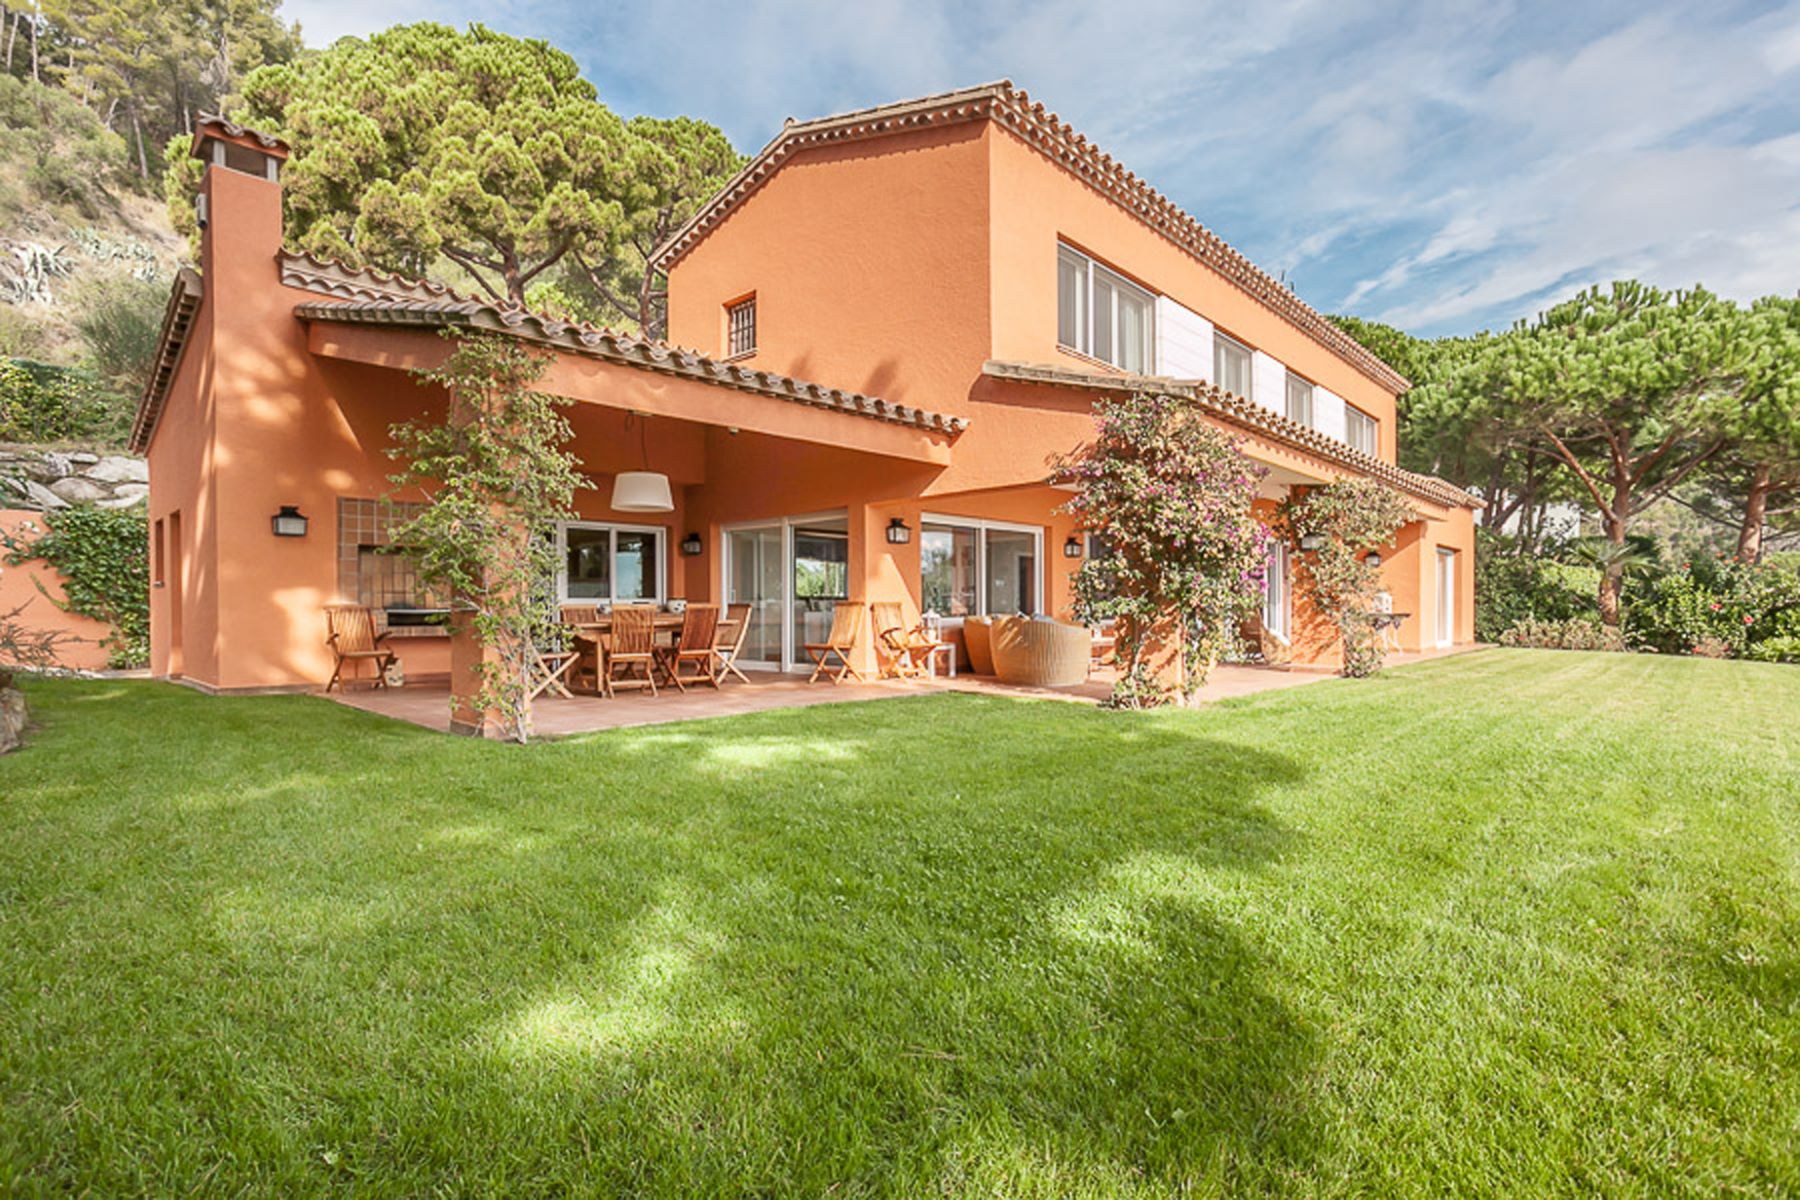 واحد منزل الأسرة للـ Sale في Bright villa with sea views in Punta Brava Sant Feliu De Guixols, Costa Brava, 17220 Spain